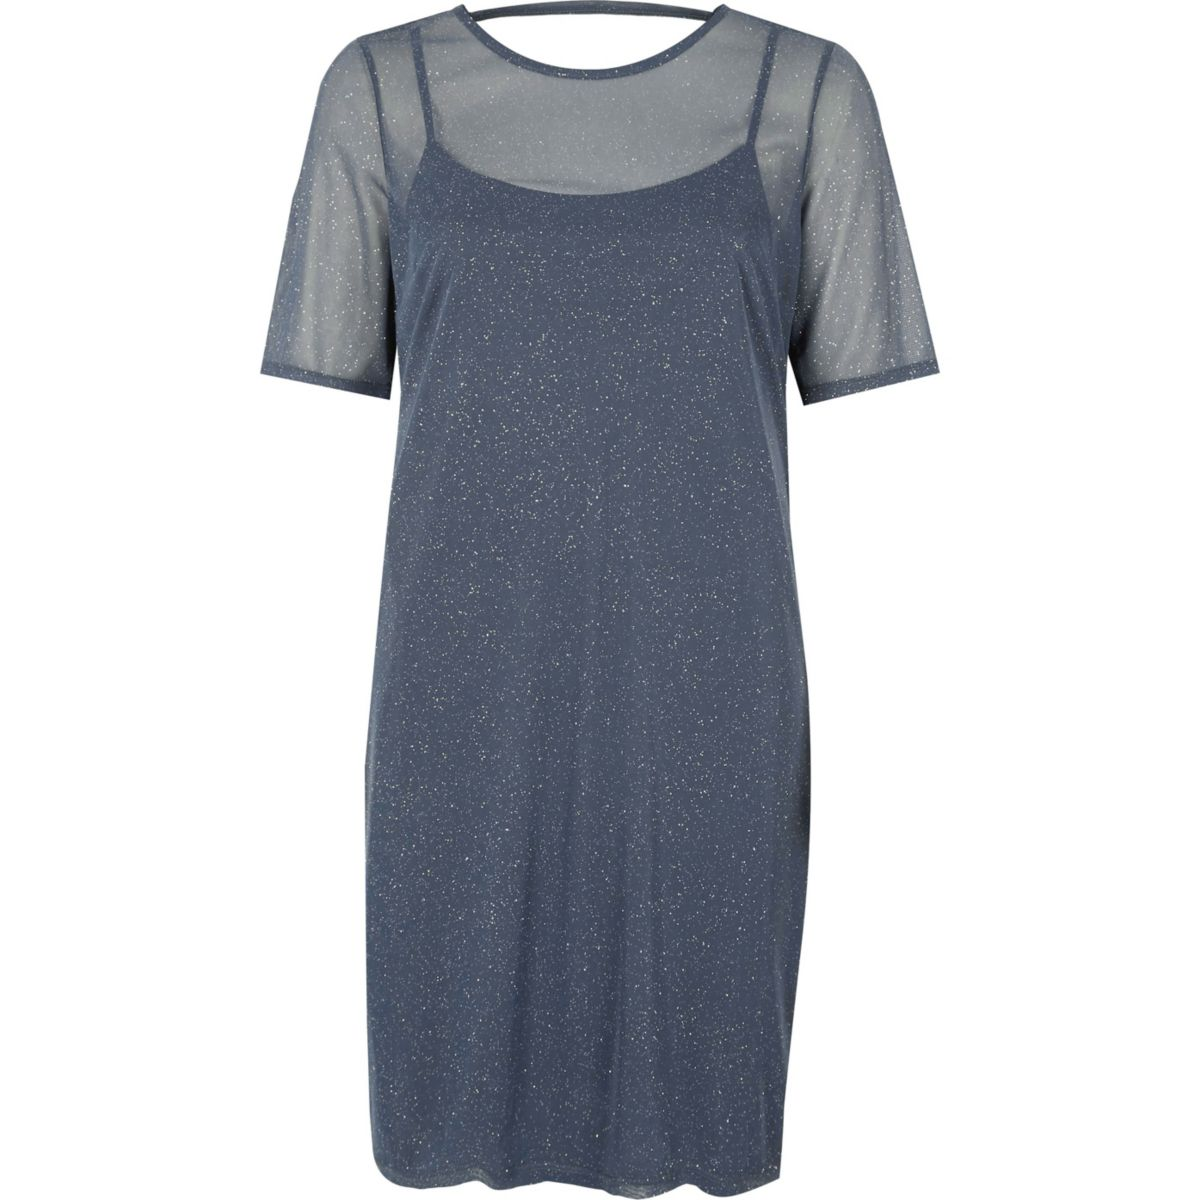 Dark grey glitter mesh t shirt dress dresses sale women for Dark grey shirt dress